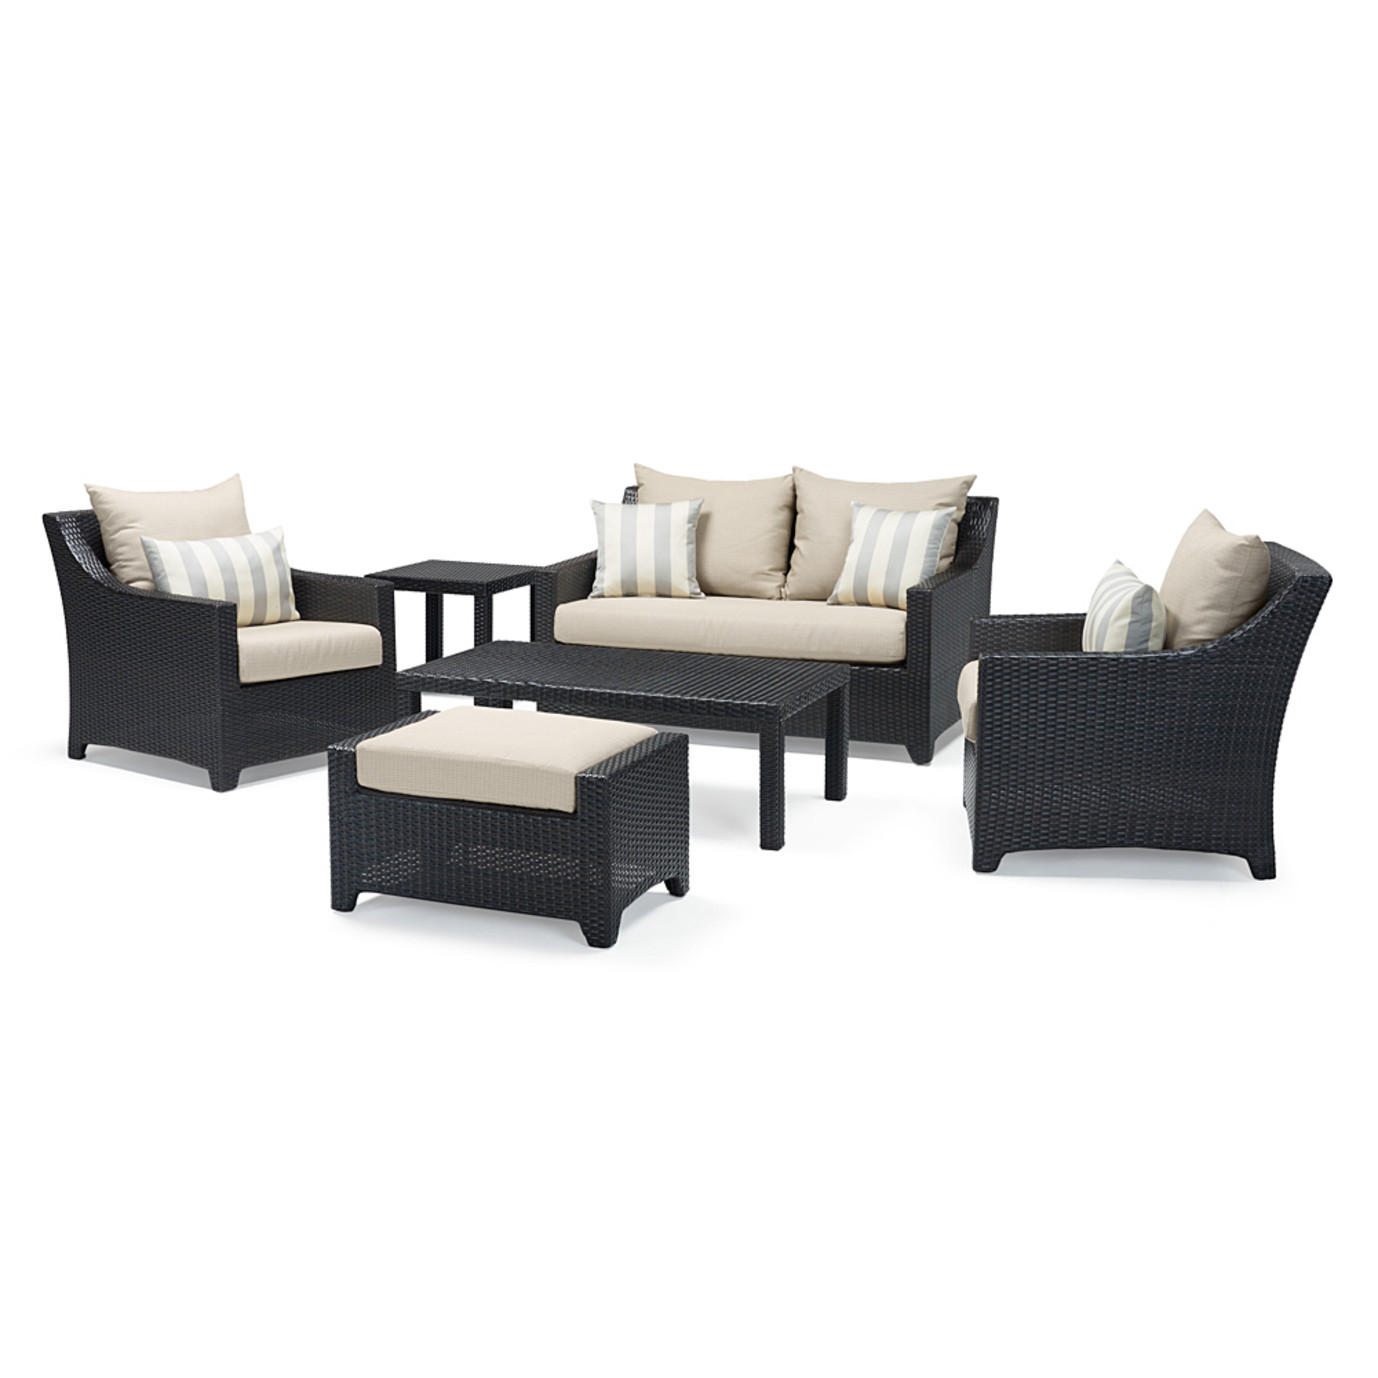 Deco™ 6 Piece Love and Club Seating Set - Slate Gray